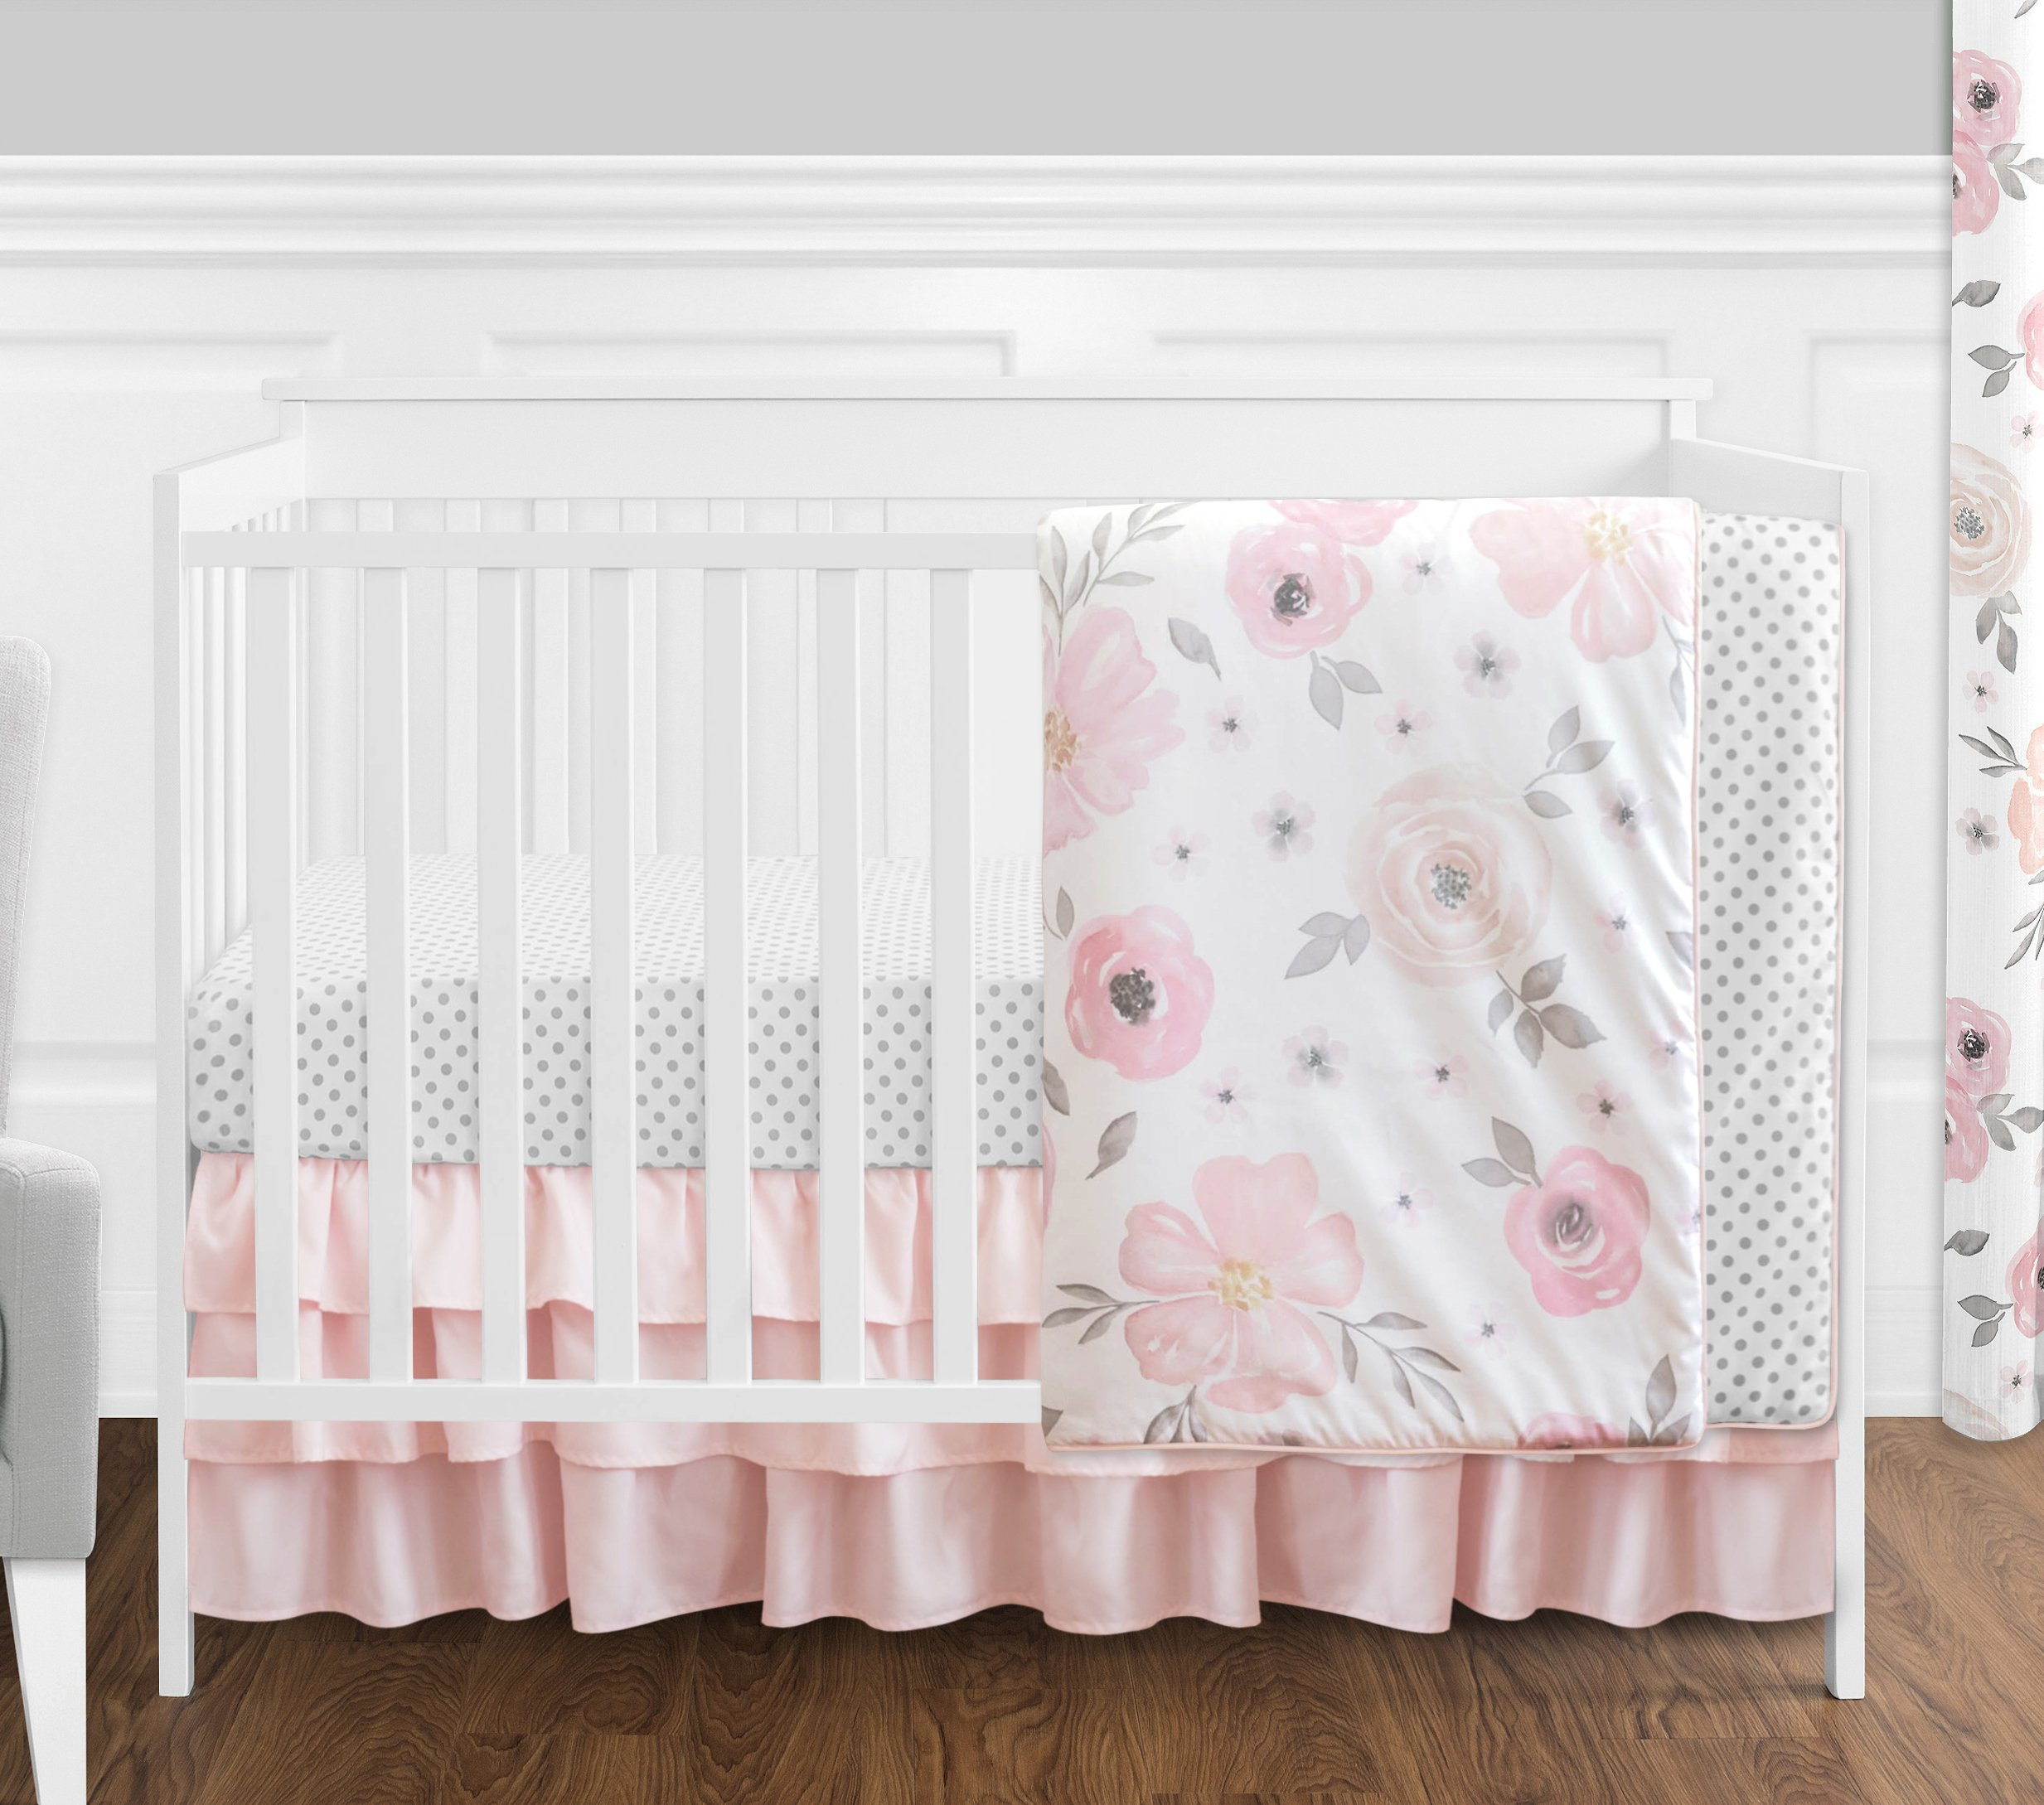 4 Pc Blush Pink Grey And White Watercolor Floral Baby Girl Crib Bedding Set